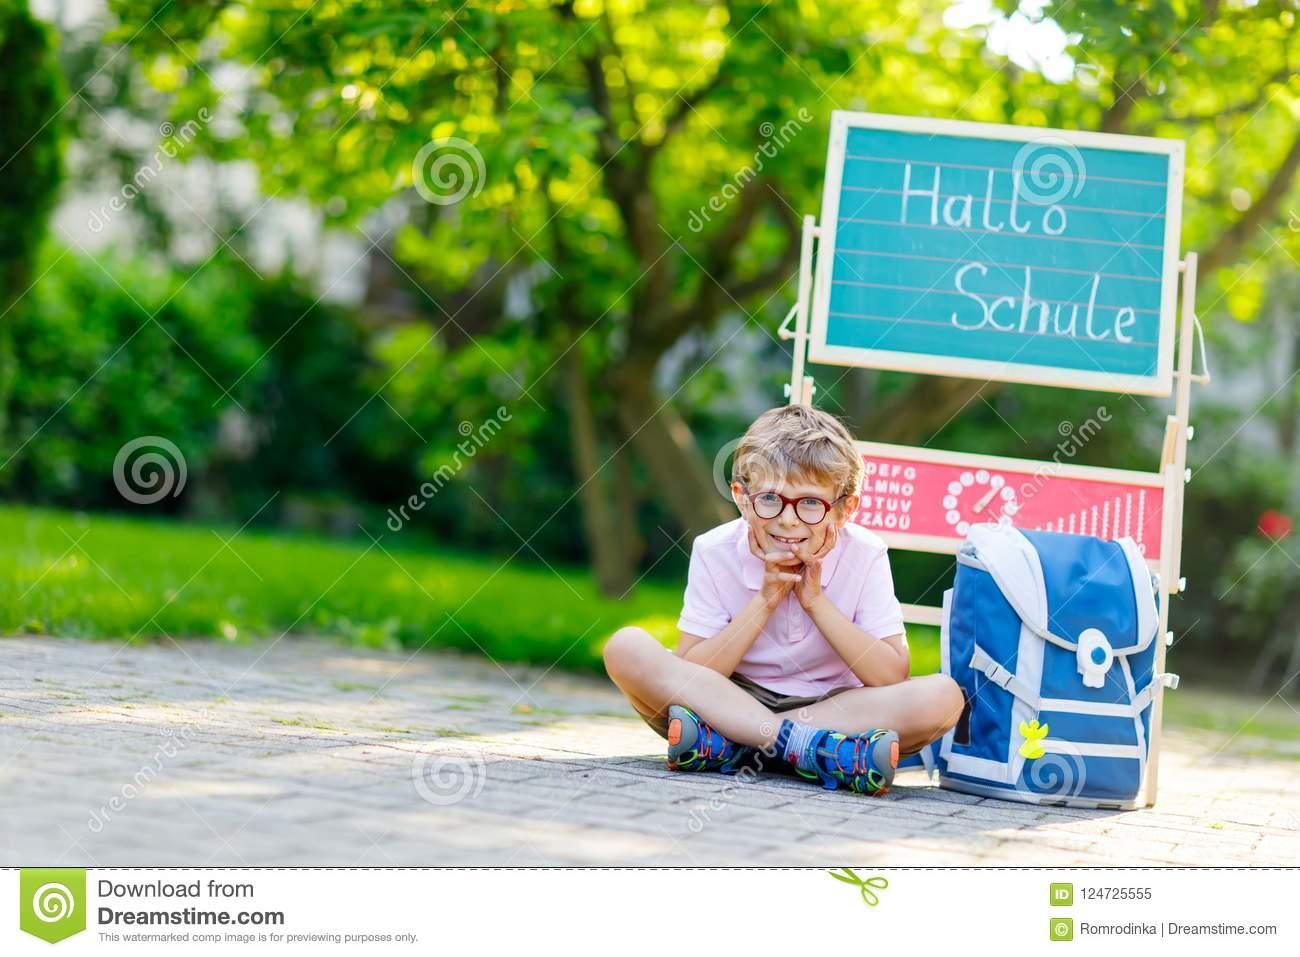 Happy little kid boy with glasses sitting by desk and backpack or satchel. Schoolkid with traditional German school bag